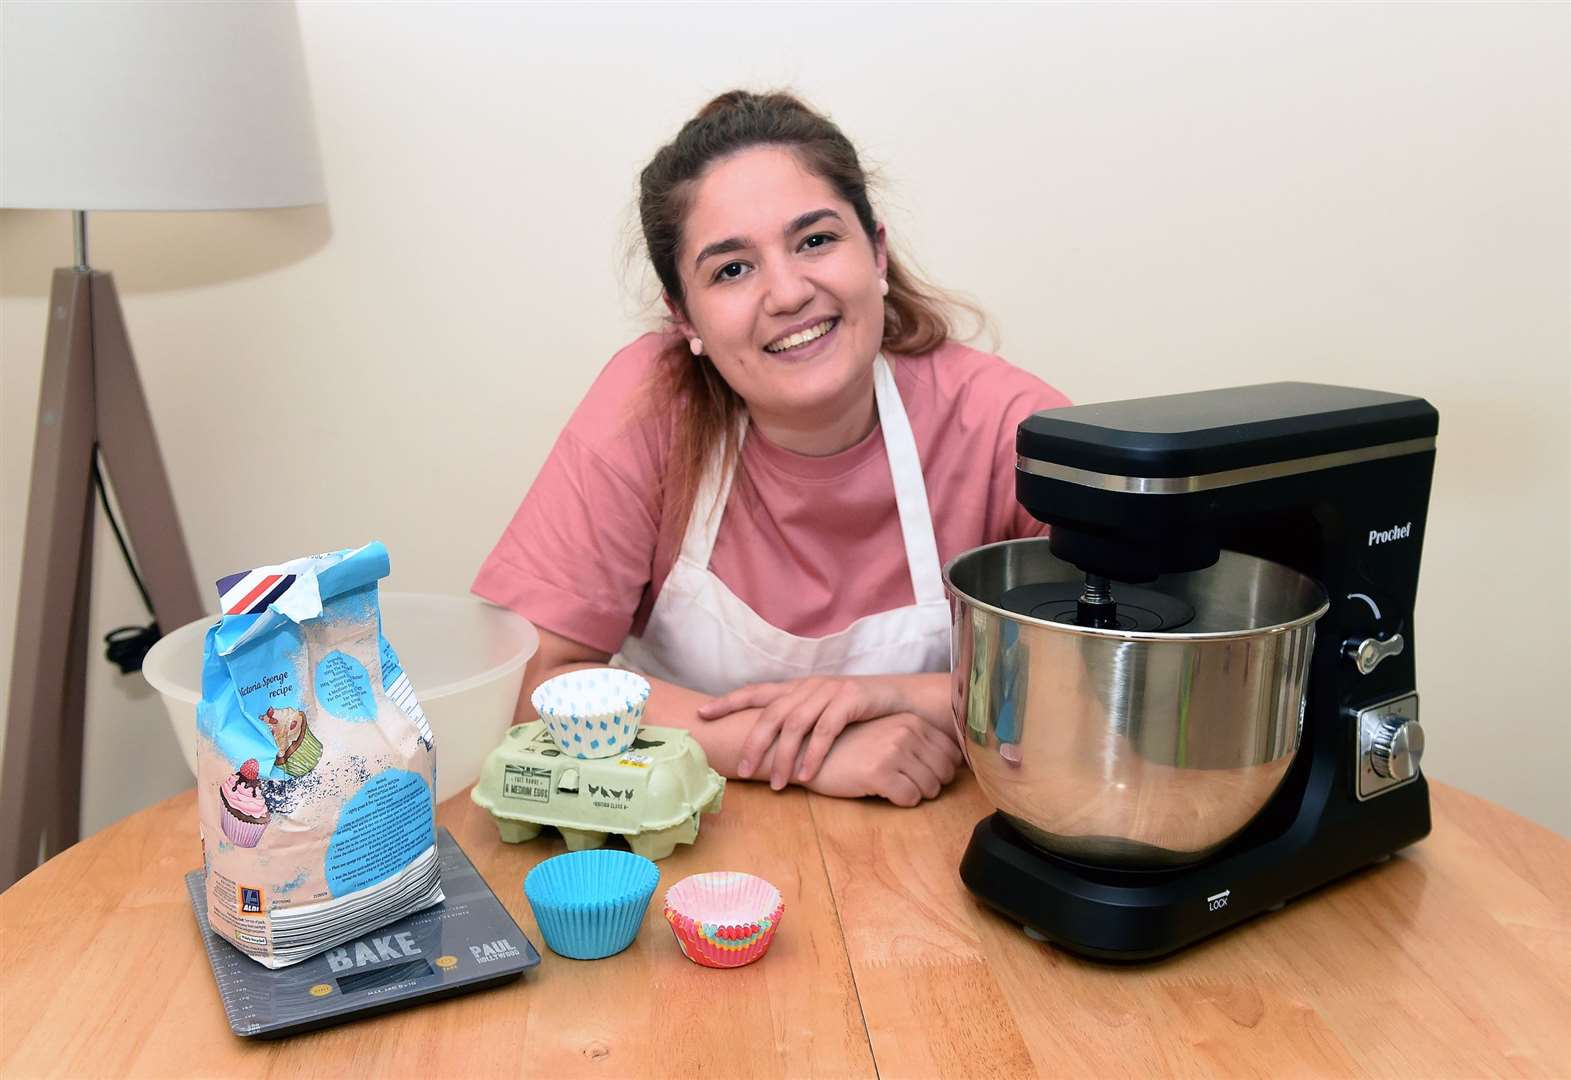 New mum stumbles on the ingredients for tasty business idea